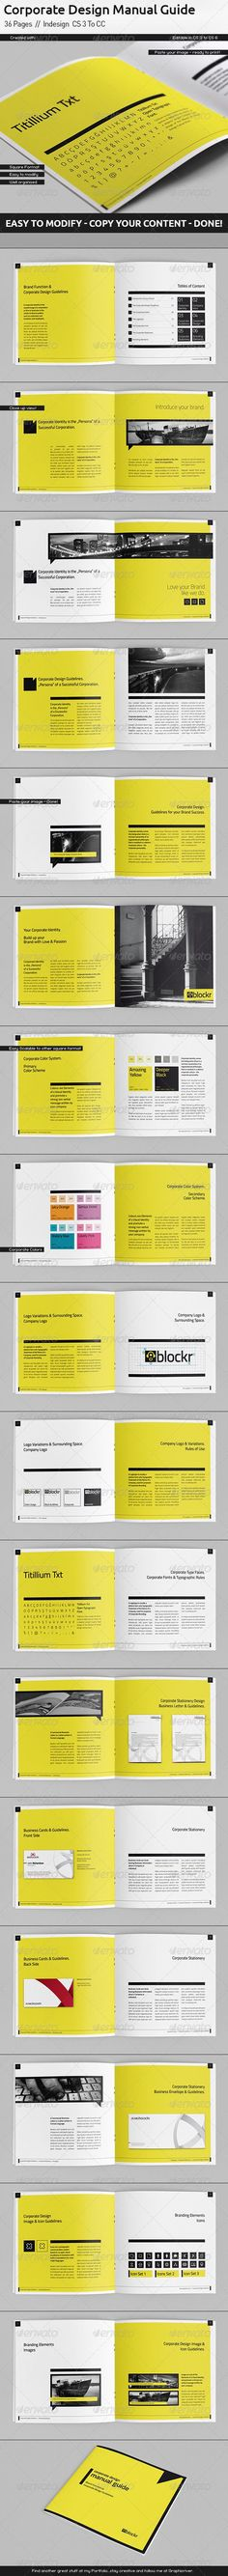 Corporate Design Manual Guide | Corporate Design Manual, Corporate